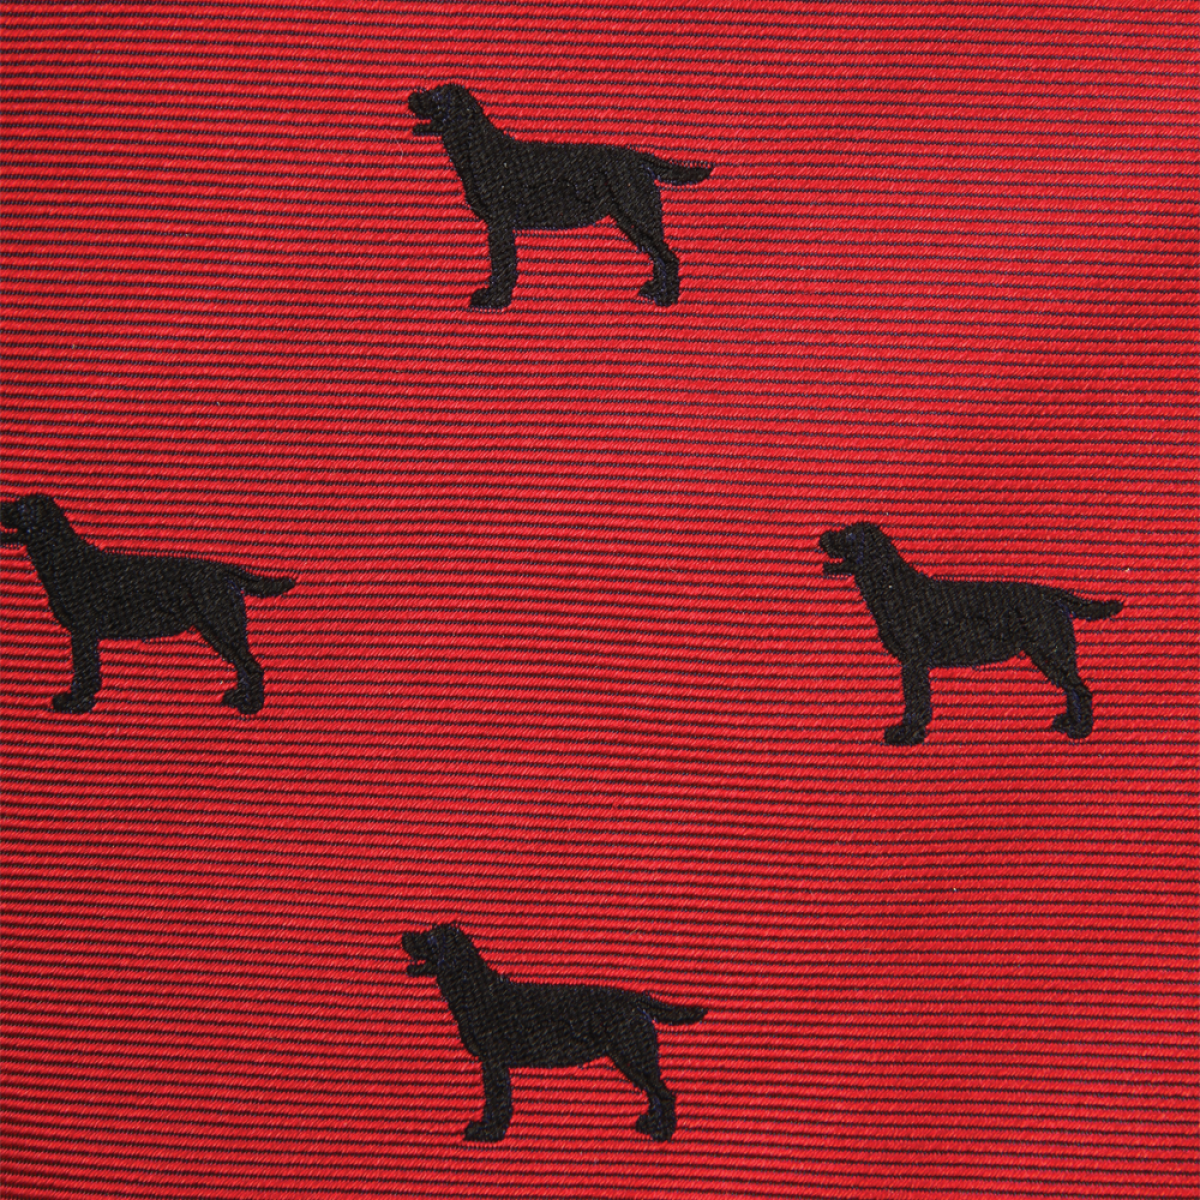 Woven Black Lab Gent - Red